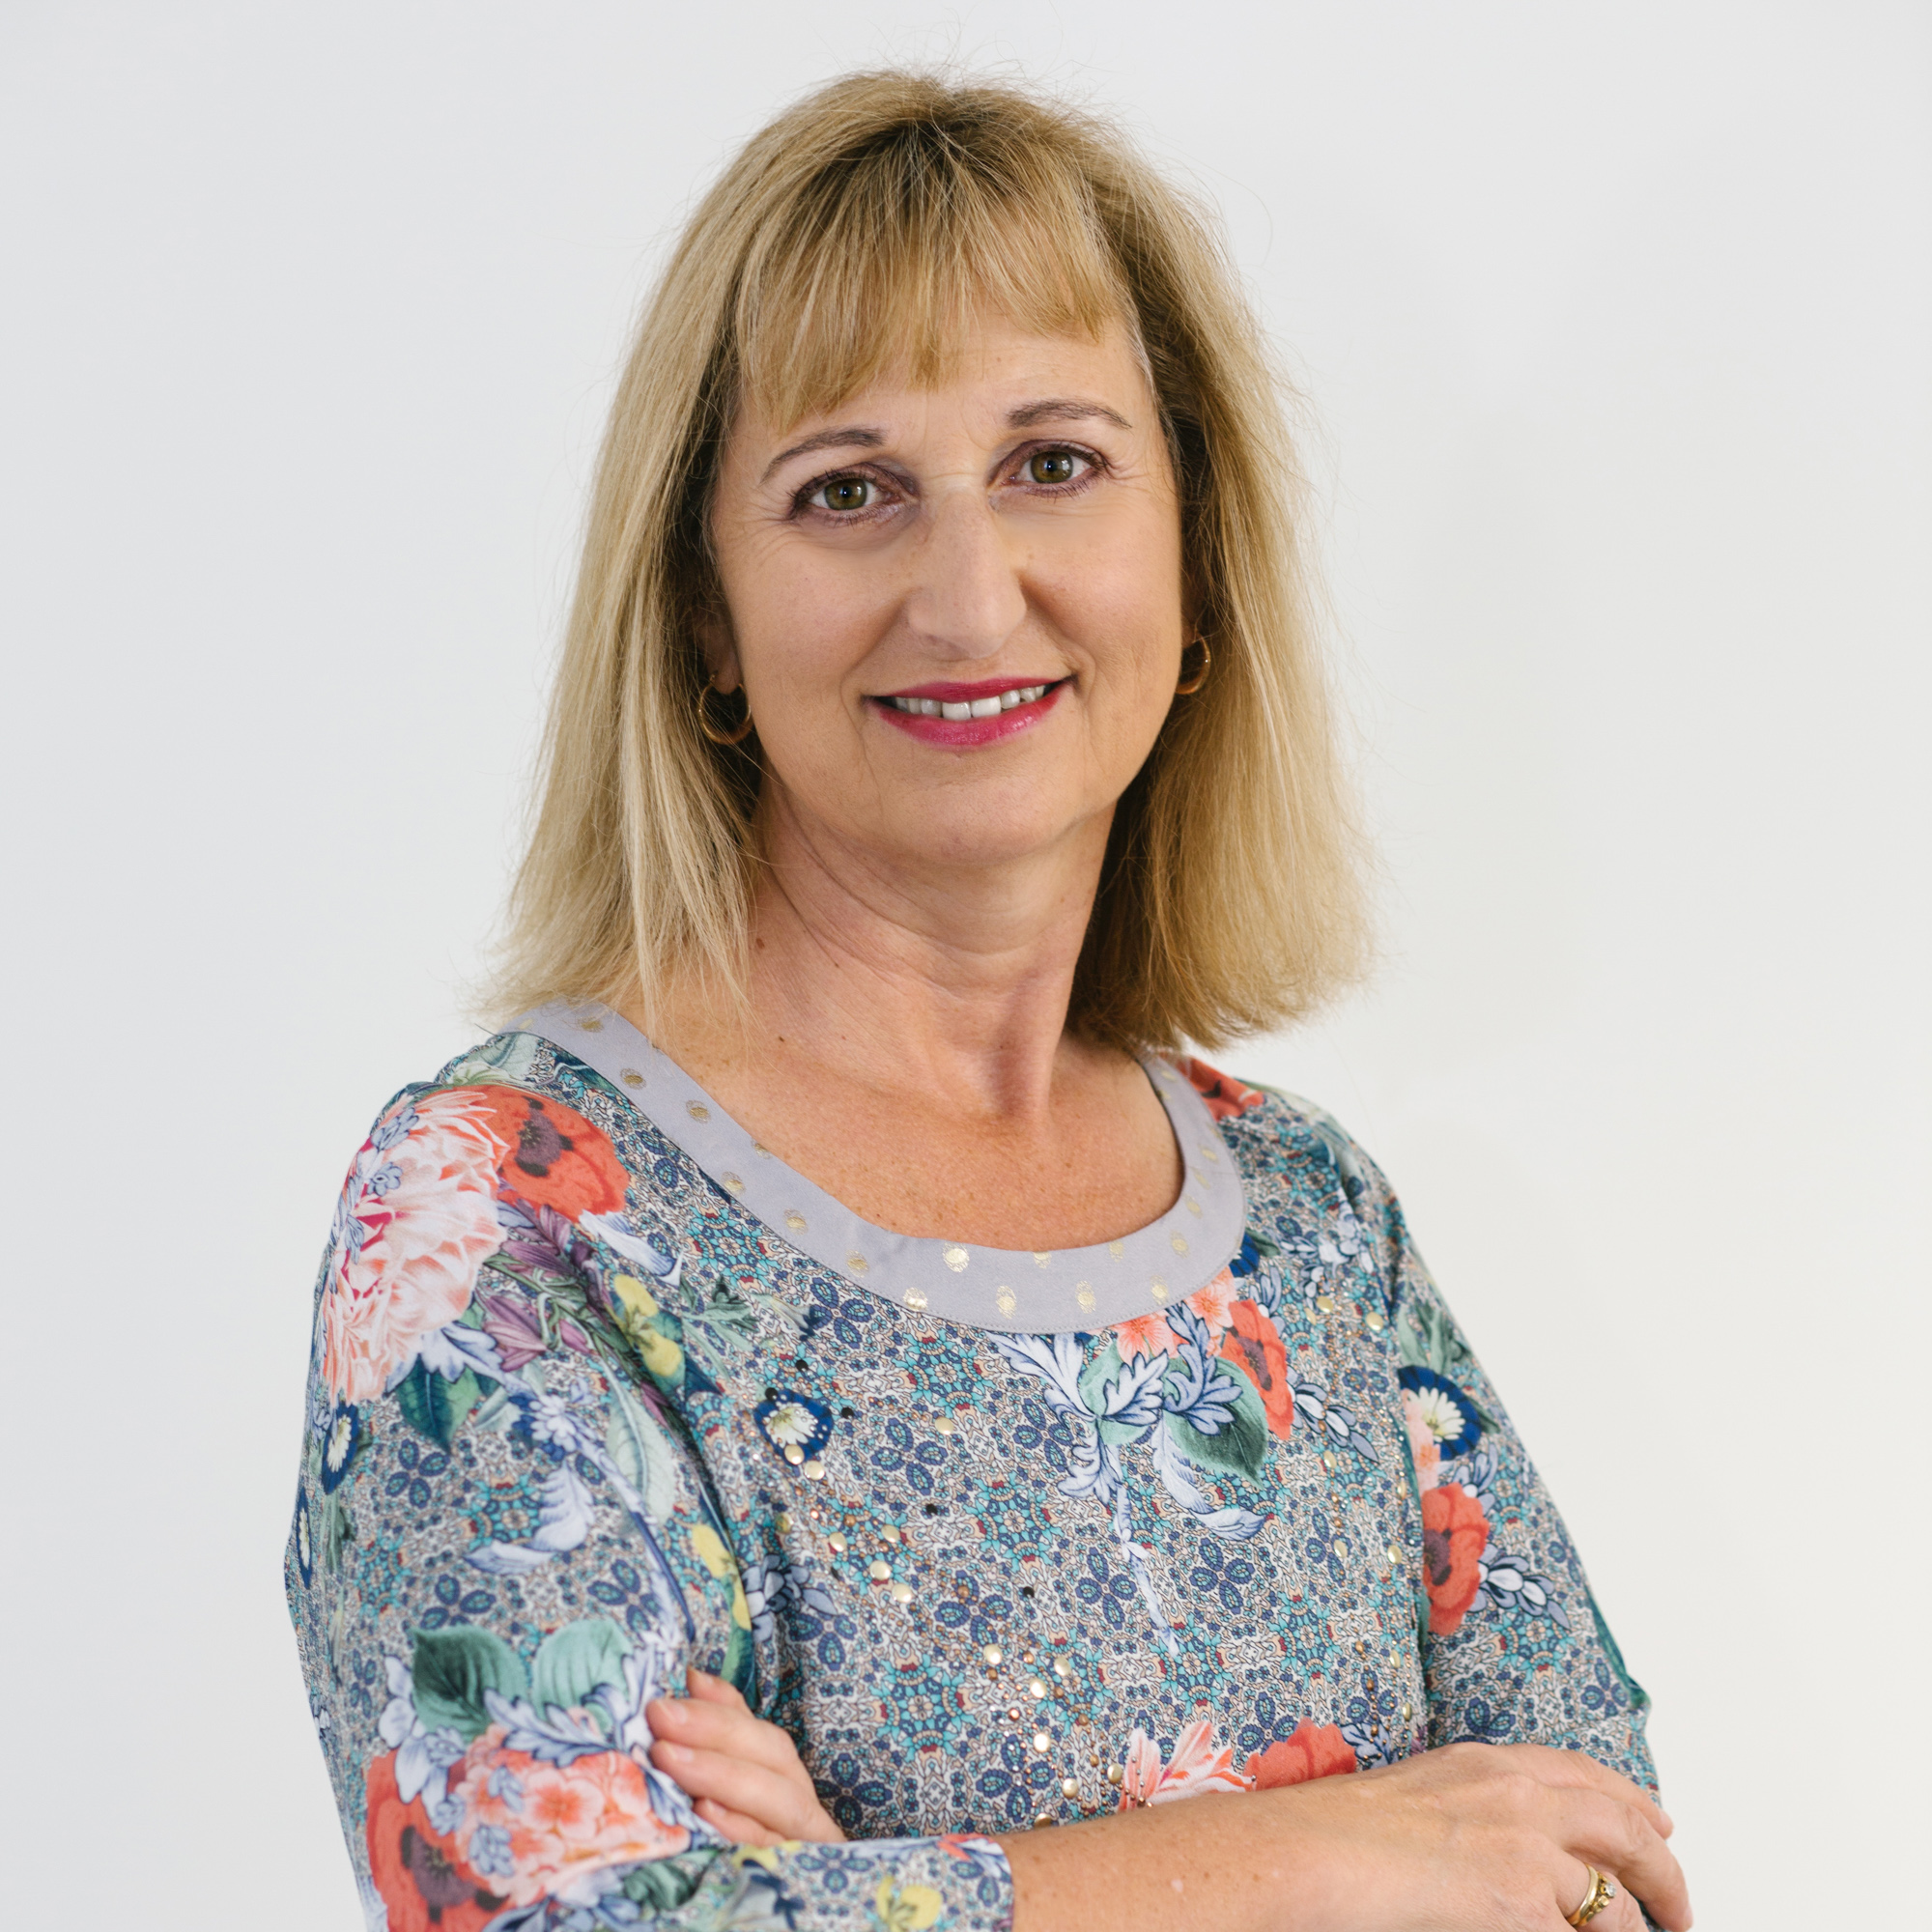 Jo Bozinoff   Office Manager   Jo joined Peter in May 2000 after having worked in various Executive Assistant roles. At Bozinoff Mortgages Jo ensures the business and back office functions are running smoothly. She manages the systems required to organise your mortgage.  Phone: 04 934 1832 Mobile: 027 467 1877 Email:  jo@bml.net.nz